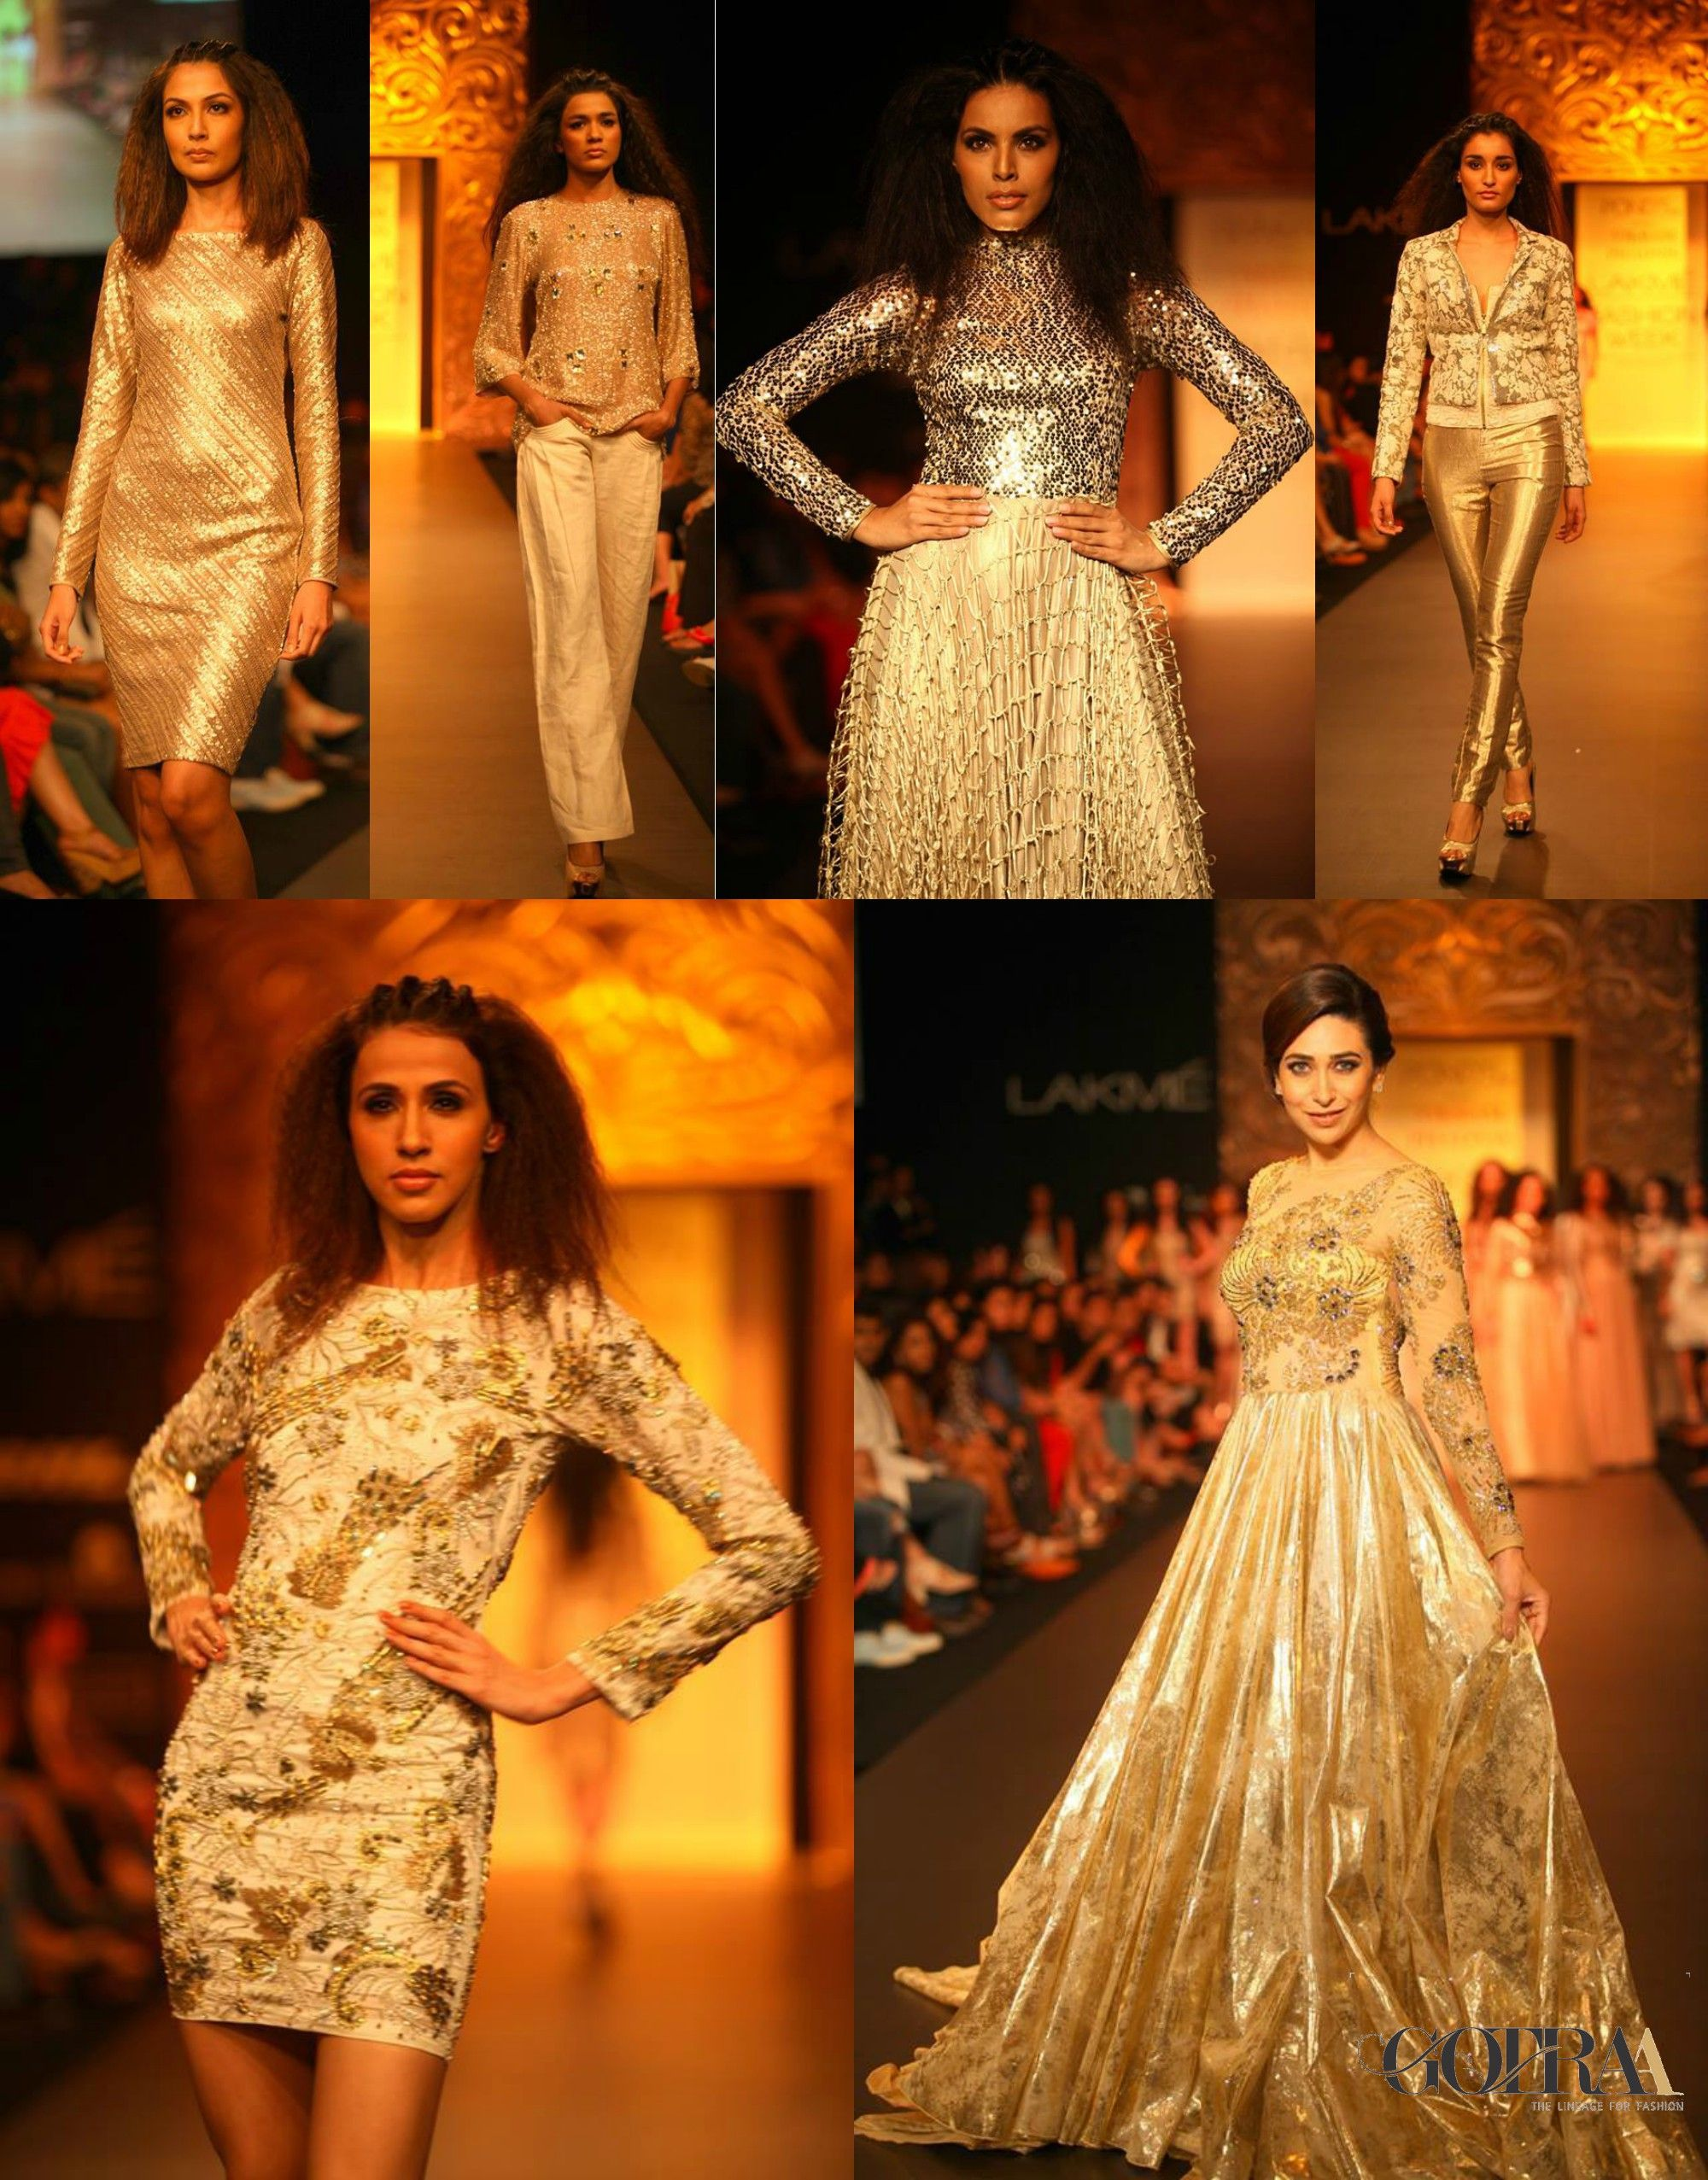 Ponds Gold Radiance Collection by Vikram Phadnis at #gotraa #indore           #VikramPhadnis #PGR #LakmeFashionWeek #Throwback #Gowns #EveningWear